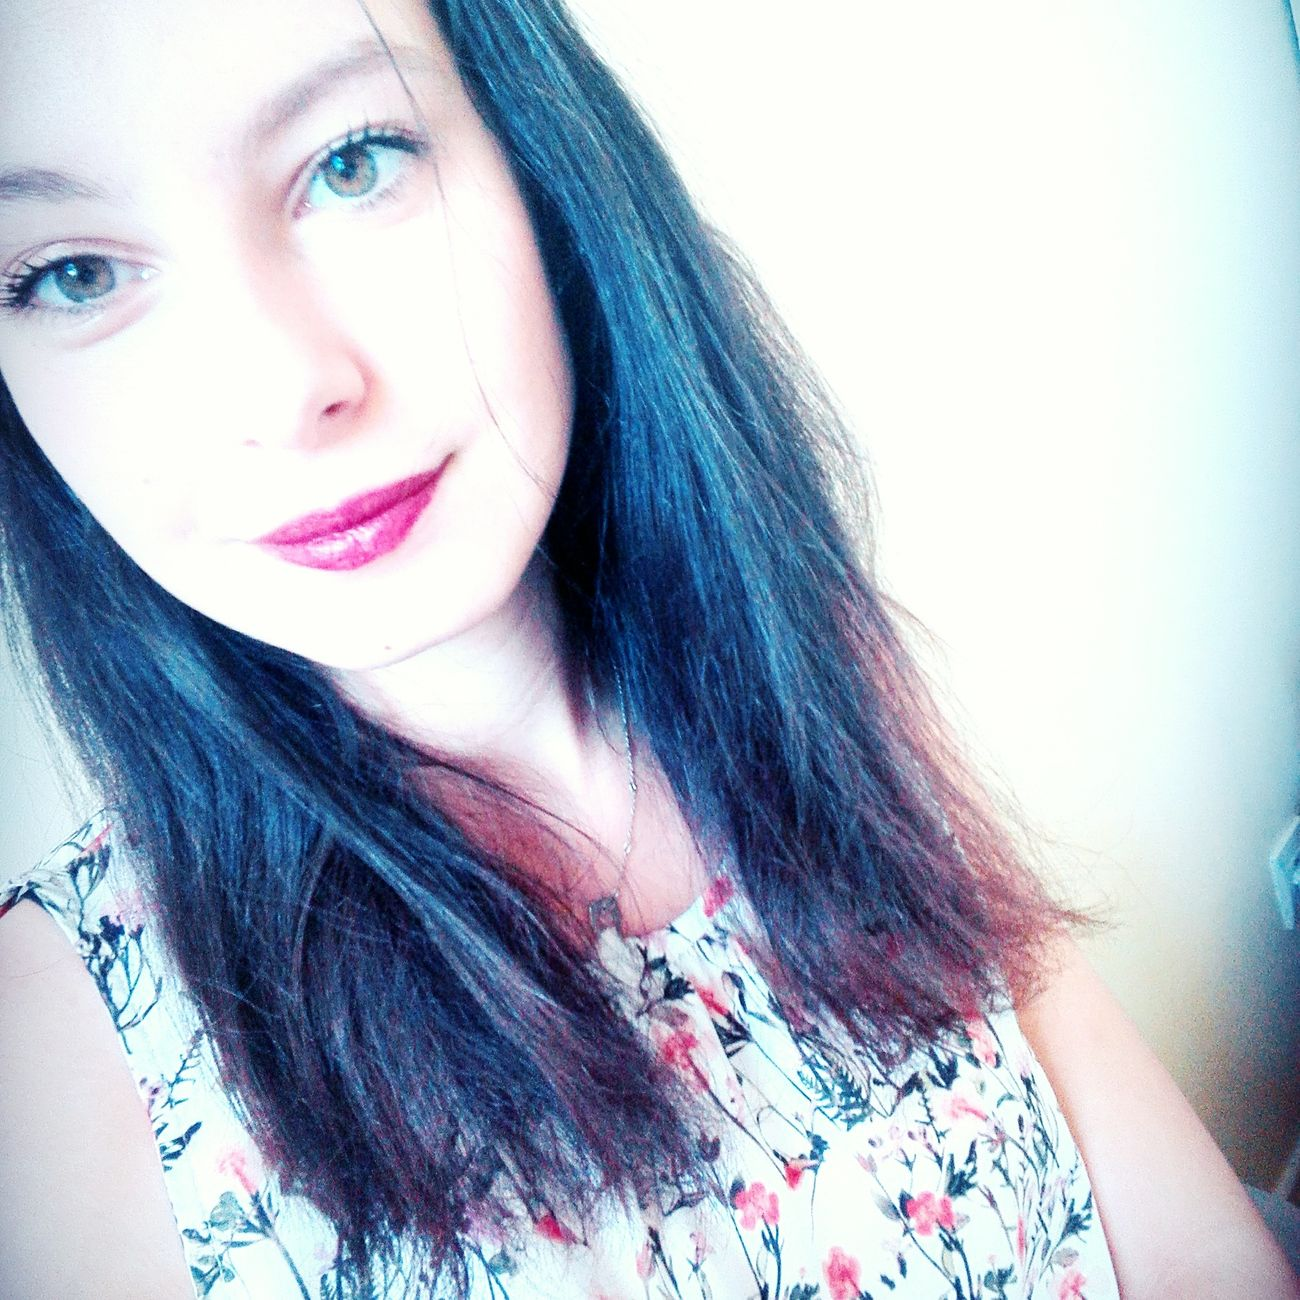 Helloworld Hello EyeEm Hi Buongiorno Bonjour Frenchgirl France French 18YearsOld Makeup Lipstick Lips Eyes ✌ Loveyou♥